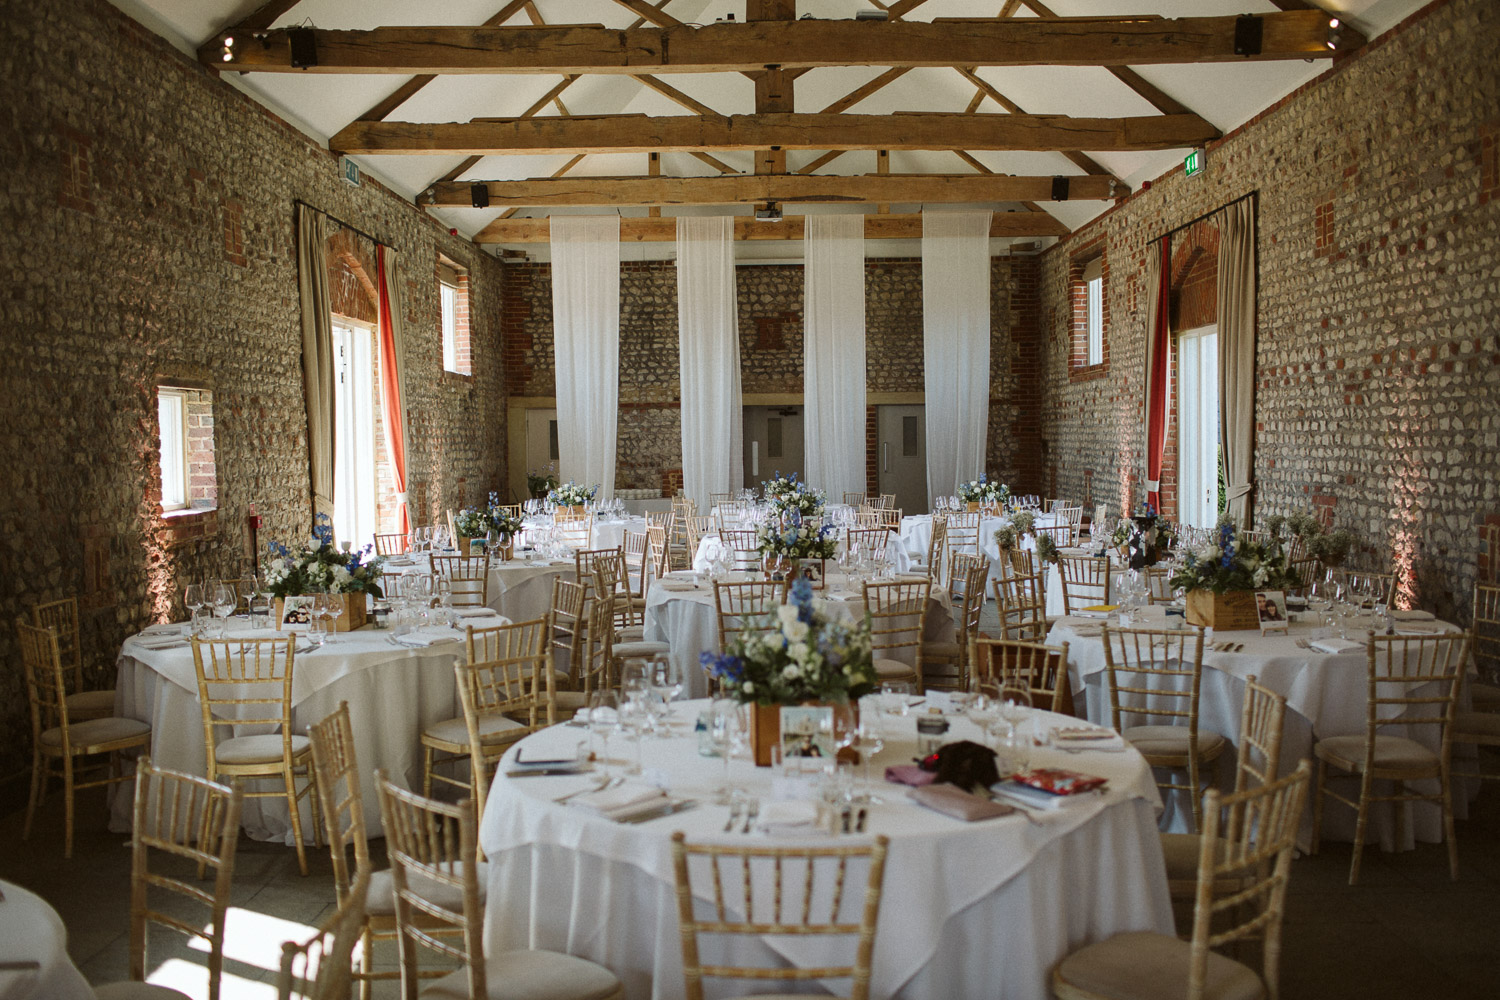 the large barn ready for the wedding breakfast